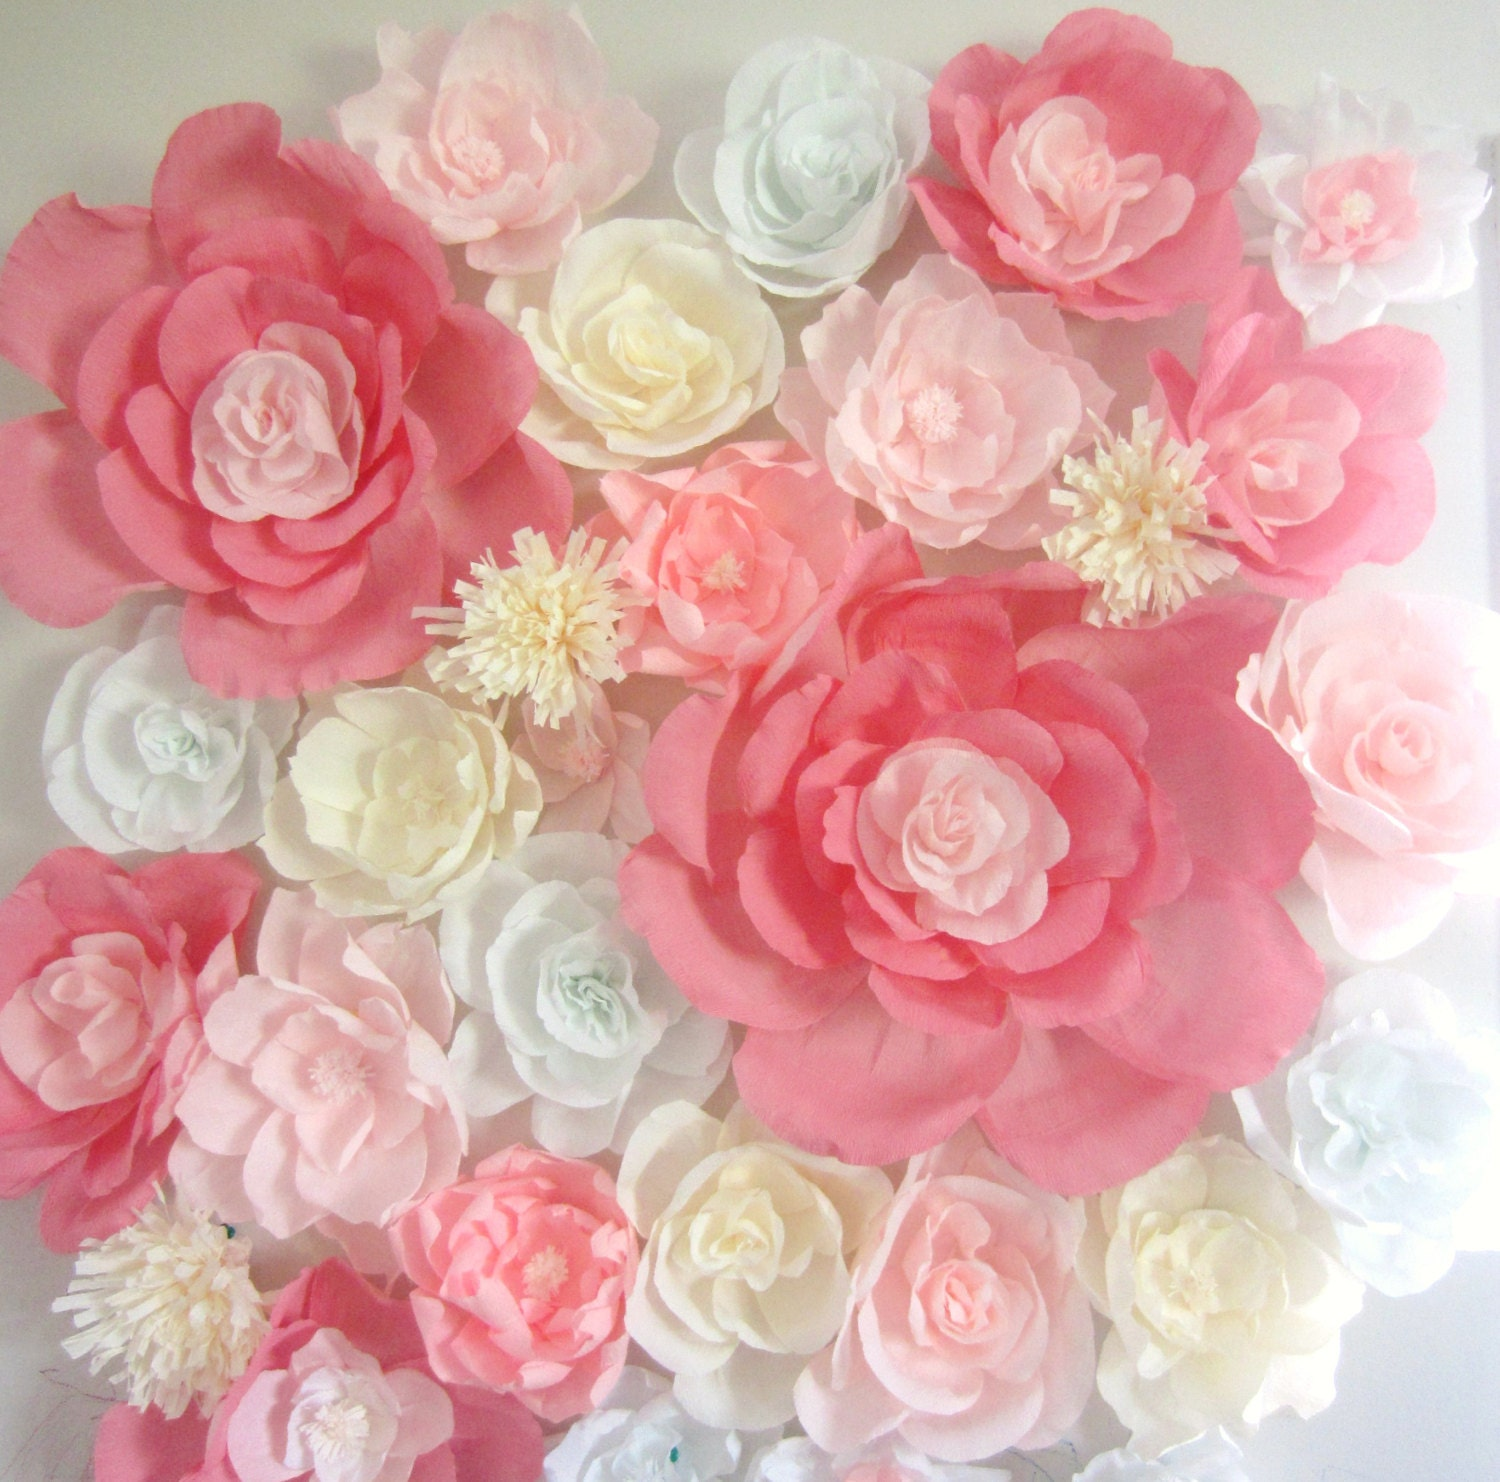 Giant paper flower wall display 4ft x 4ft wedding backdrop for Decoration flowers